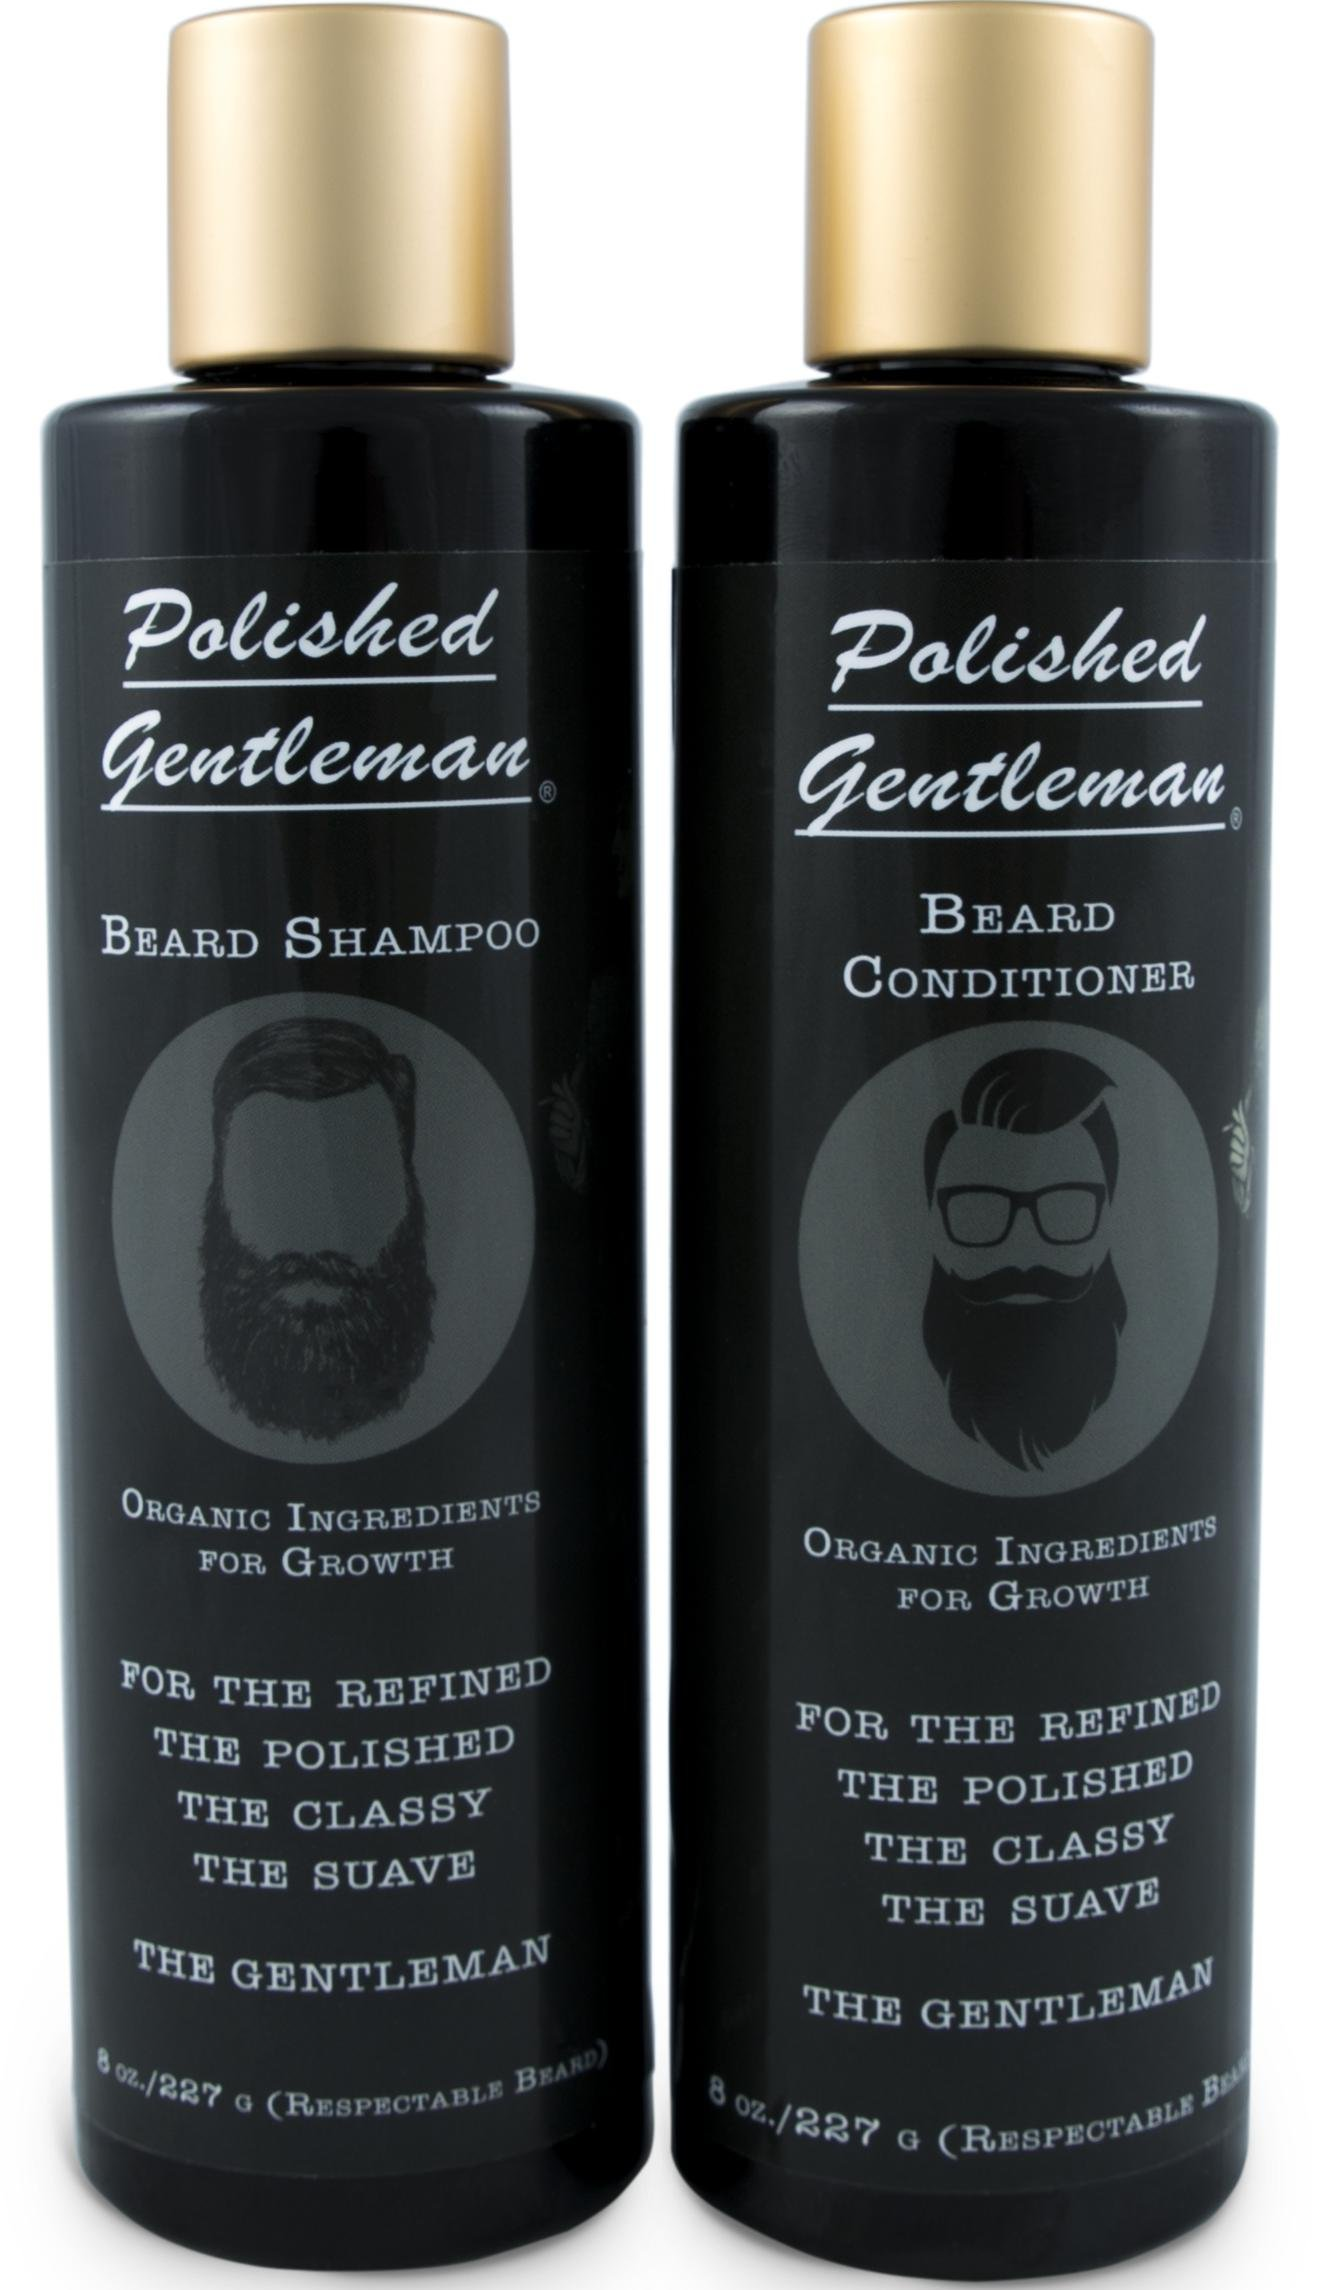 Beard Growth and Thickening Shampoo and Conditioner Set - Beard Care With Organic Beard Oil - For Best Beard Look - For Facial Hair Growth - Beard Wash for Grooming - Gift For Men - Made by USA